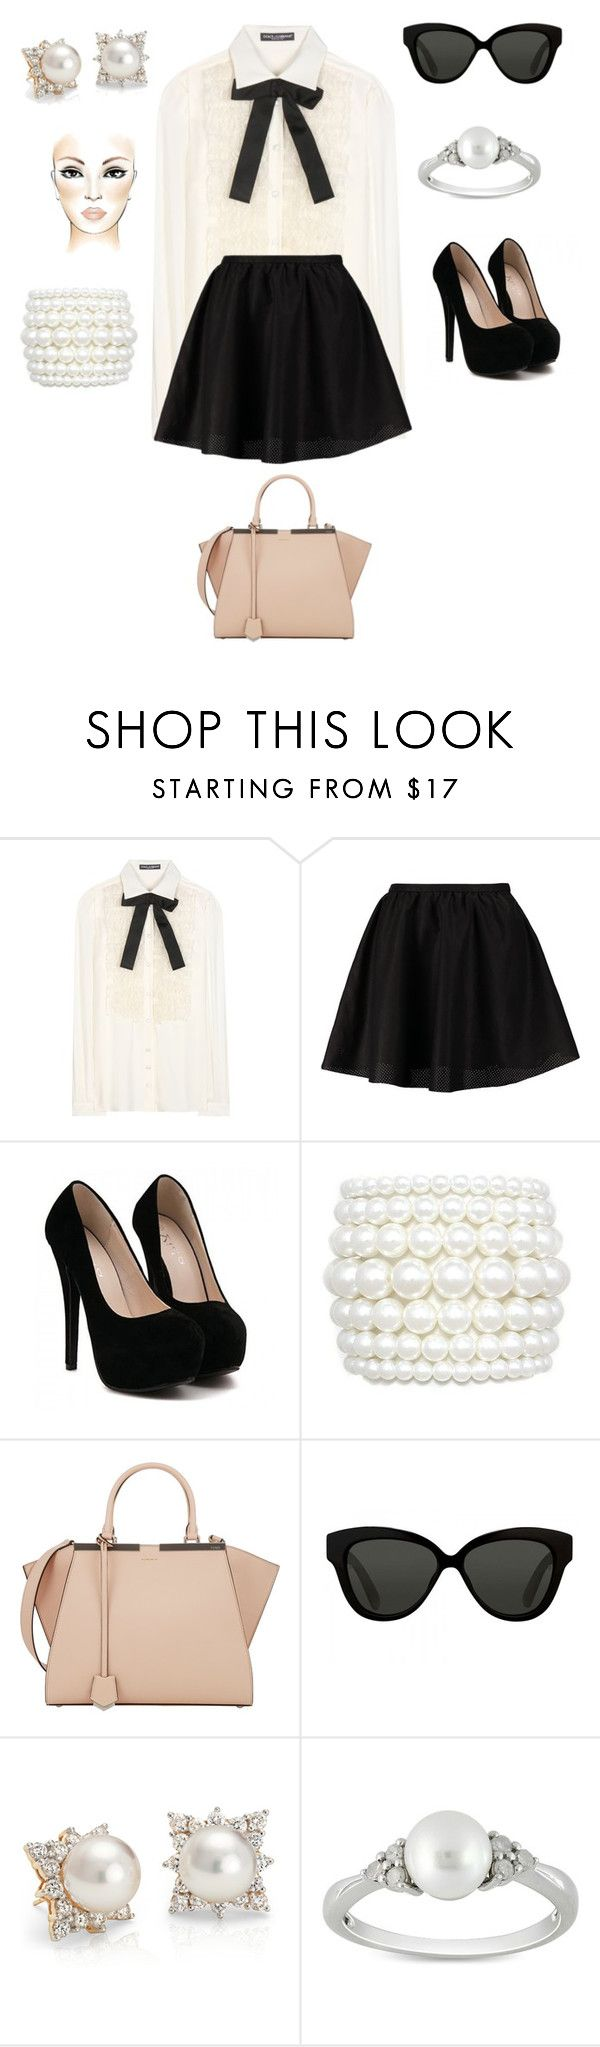 """""""Uptown"""" by amanda-j-burke on Polyvore featuring Dolce&Gabbana, ONLY, Fendi, Linda Farrow, Blue Nile and Ice"""